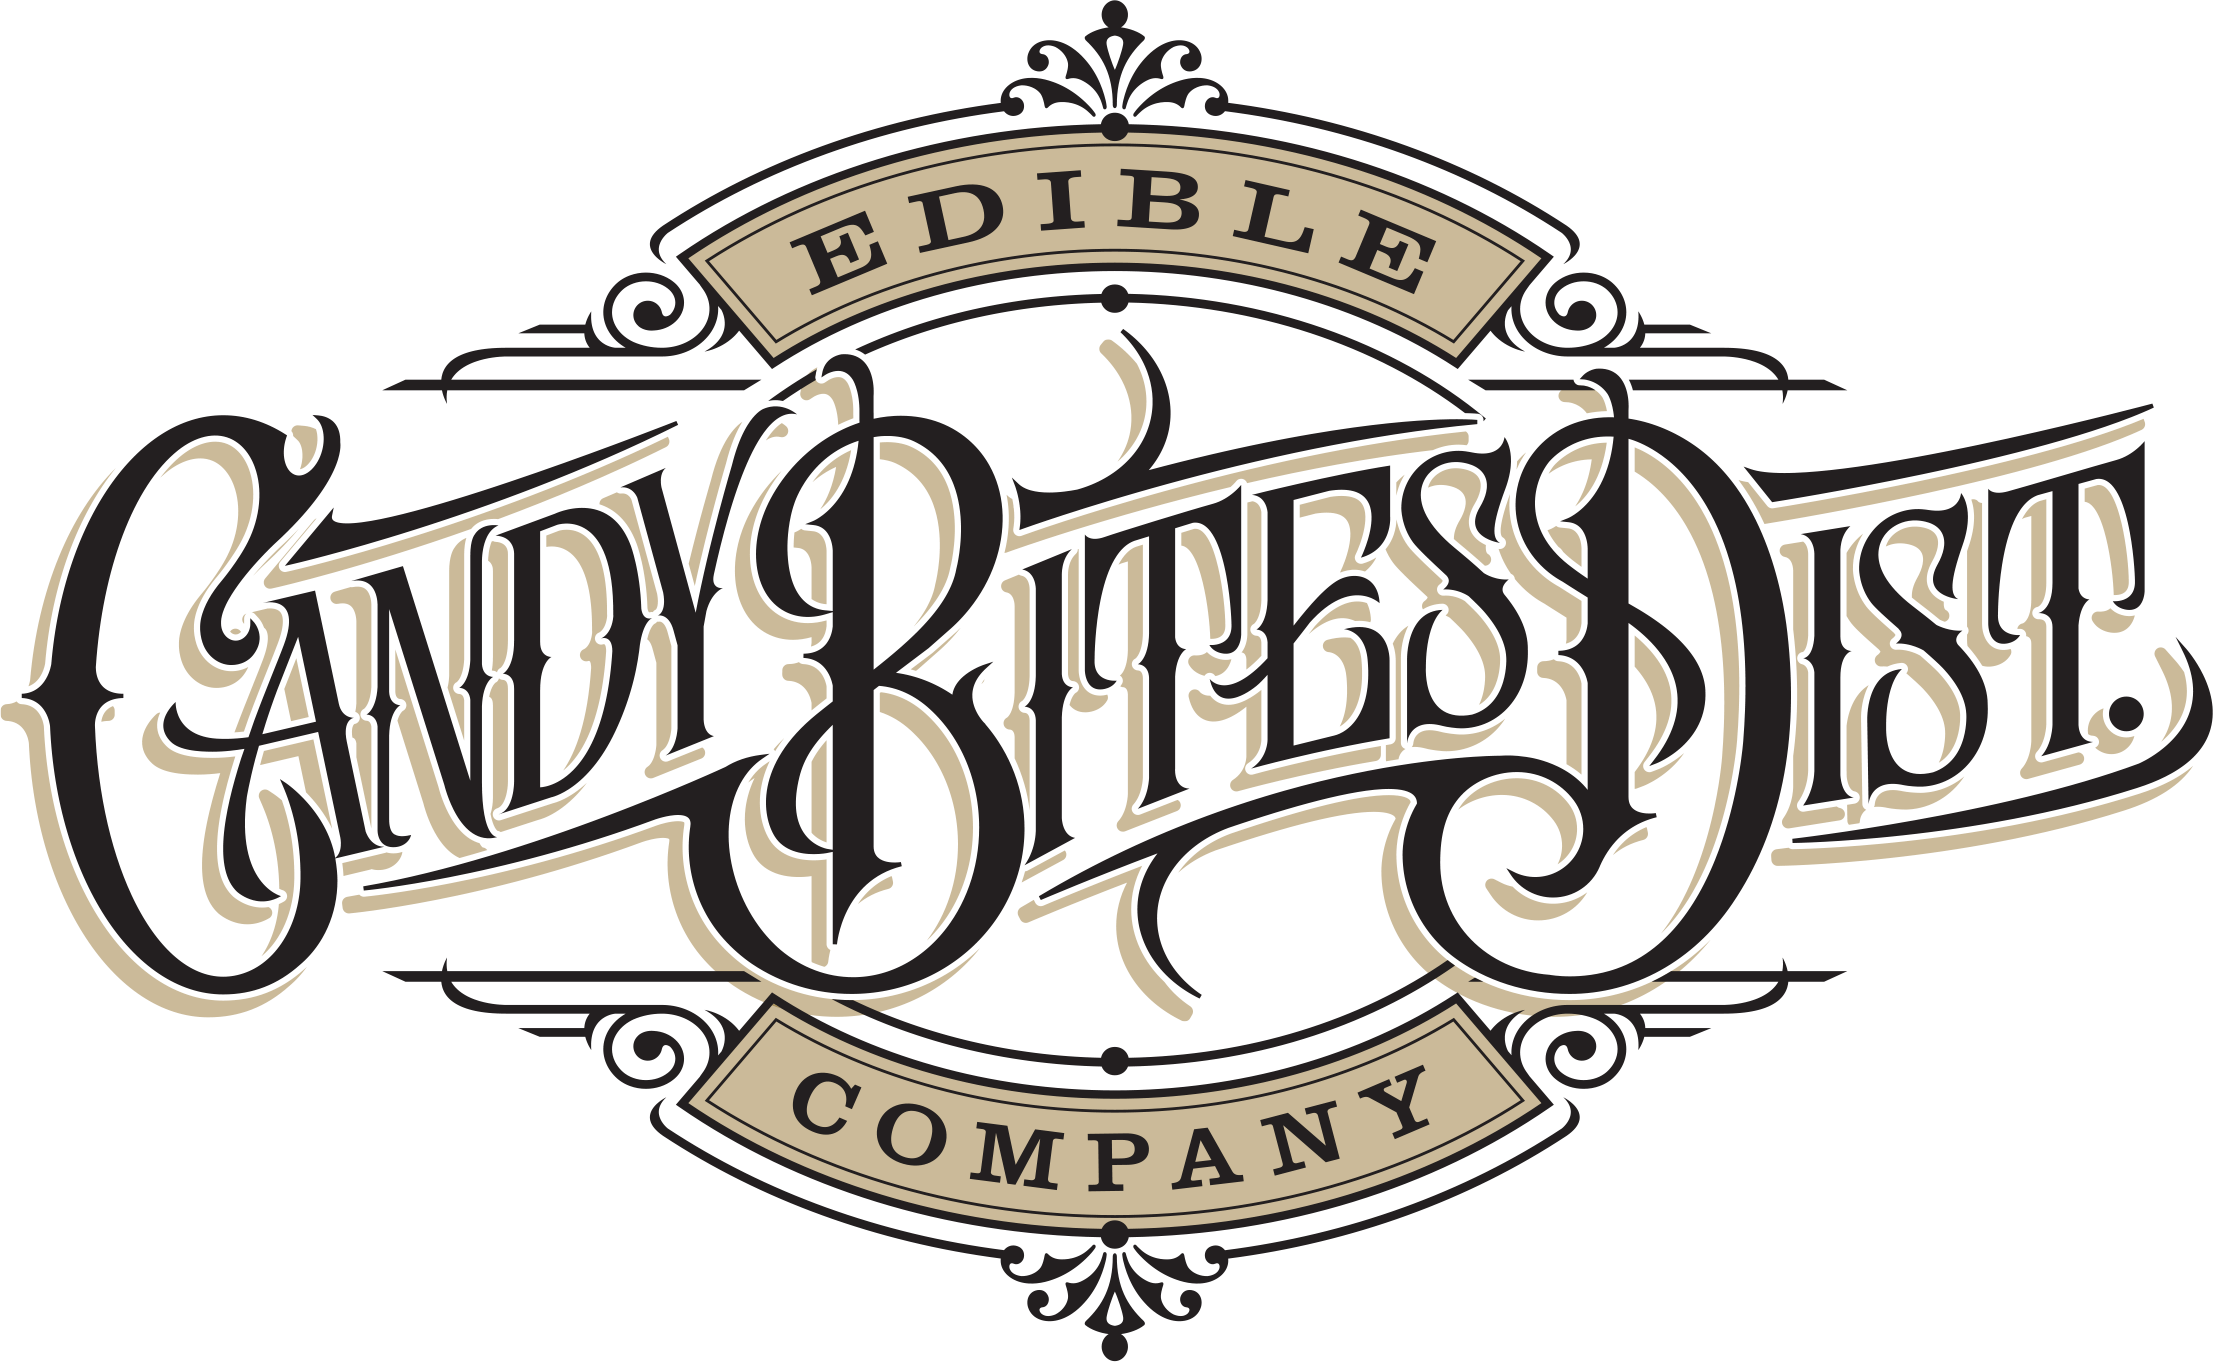 Edible Candy Bites Distribution Co.